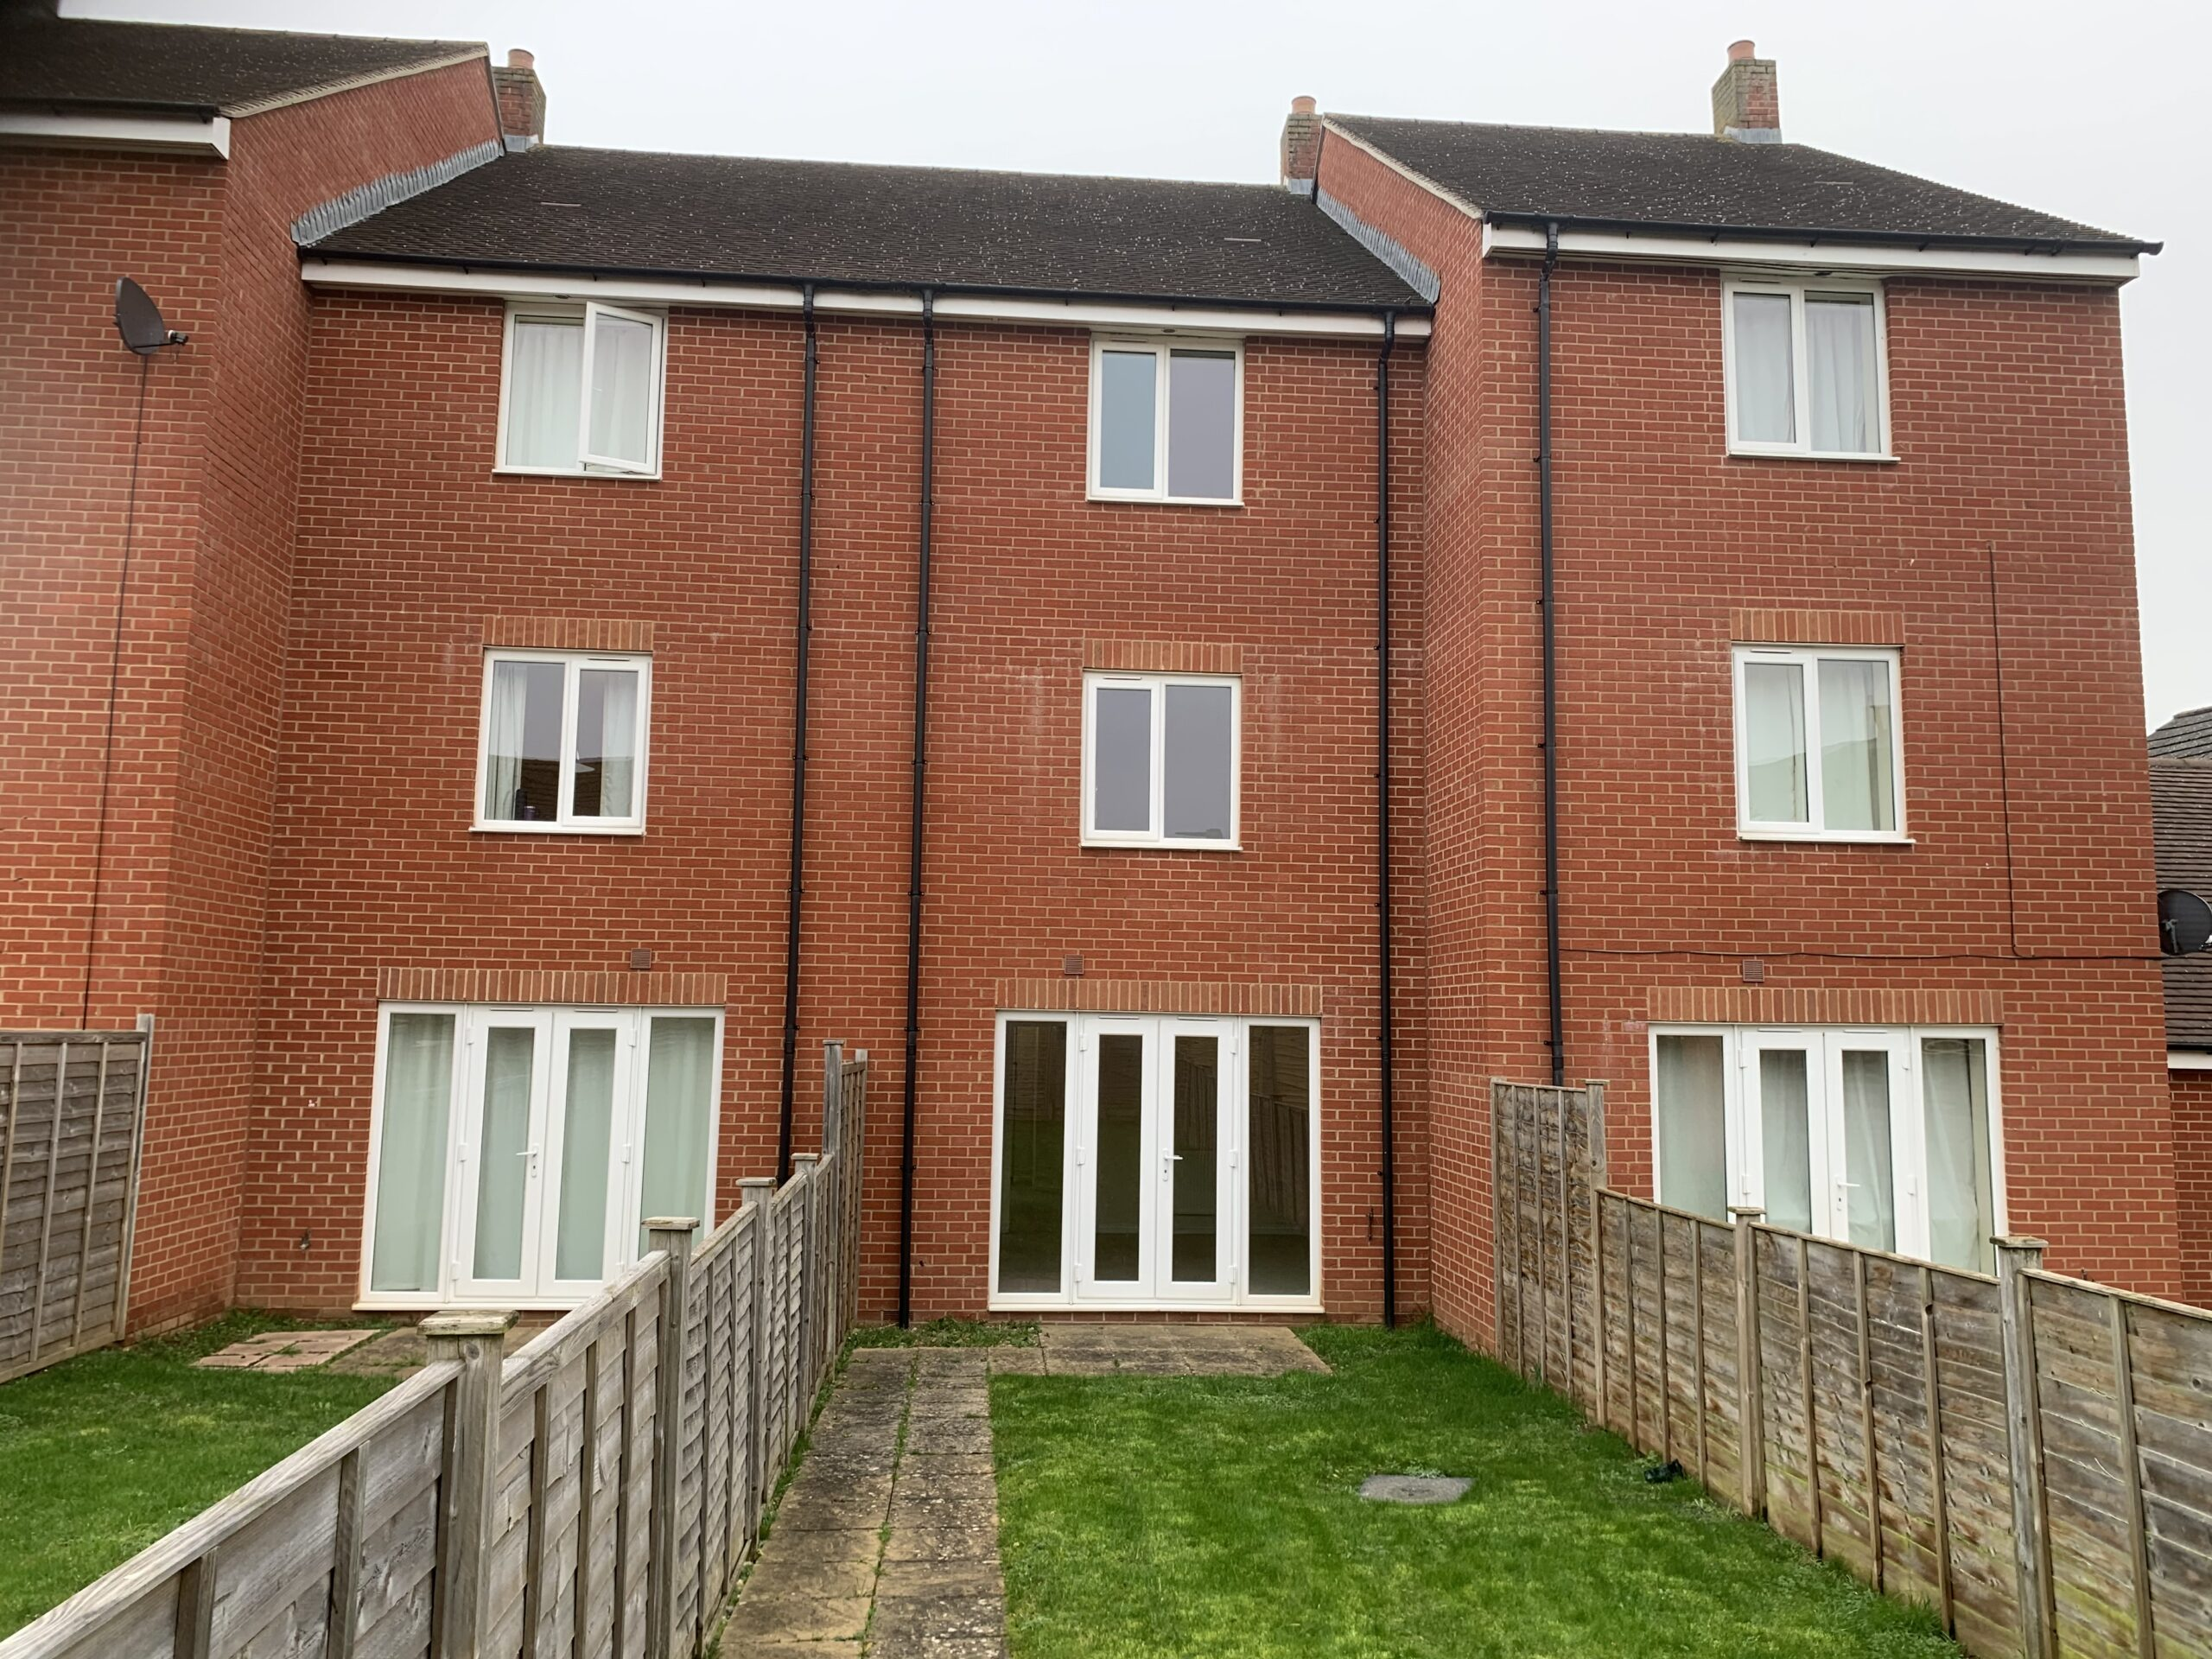 Waddington Way, Kingsway, Quedgeley